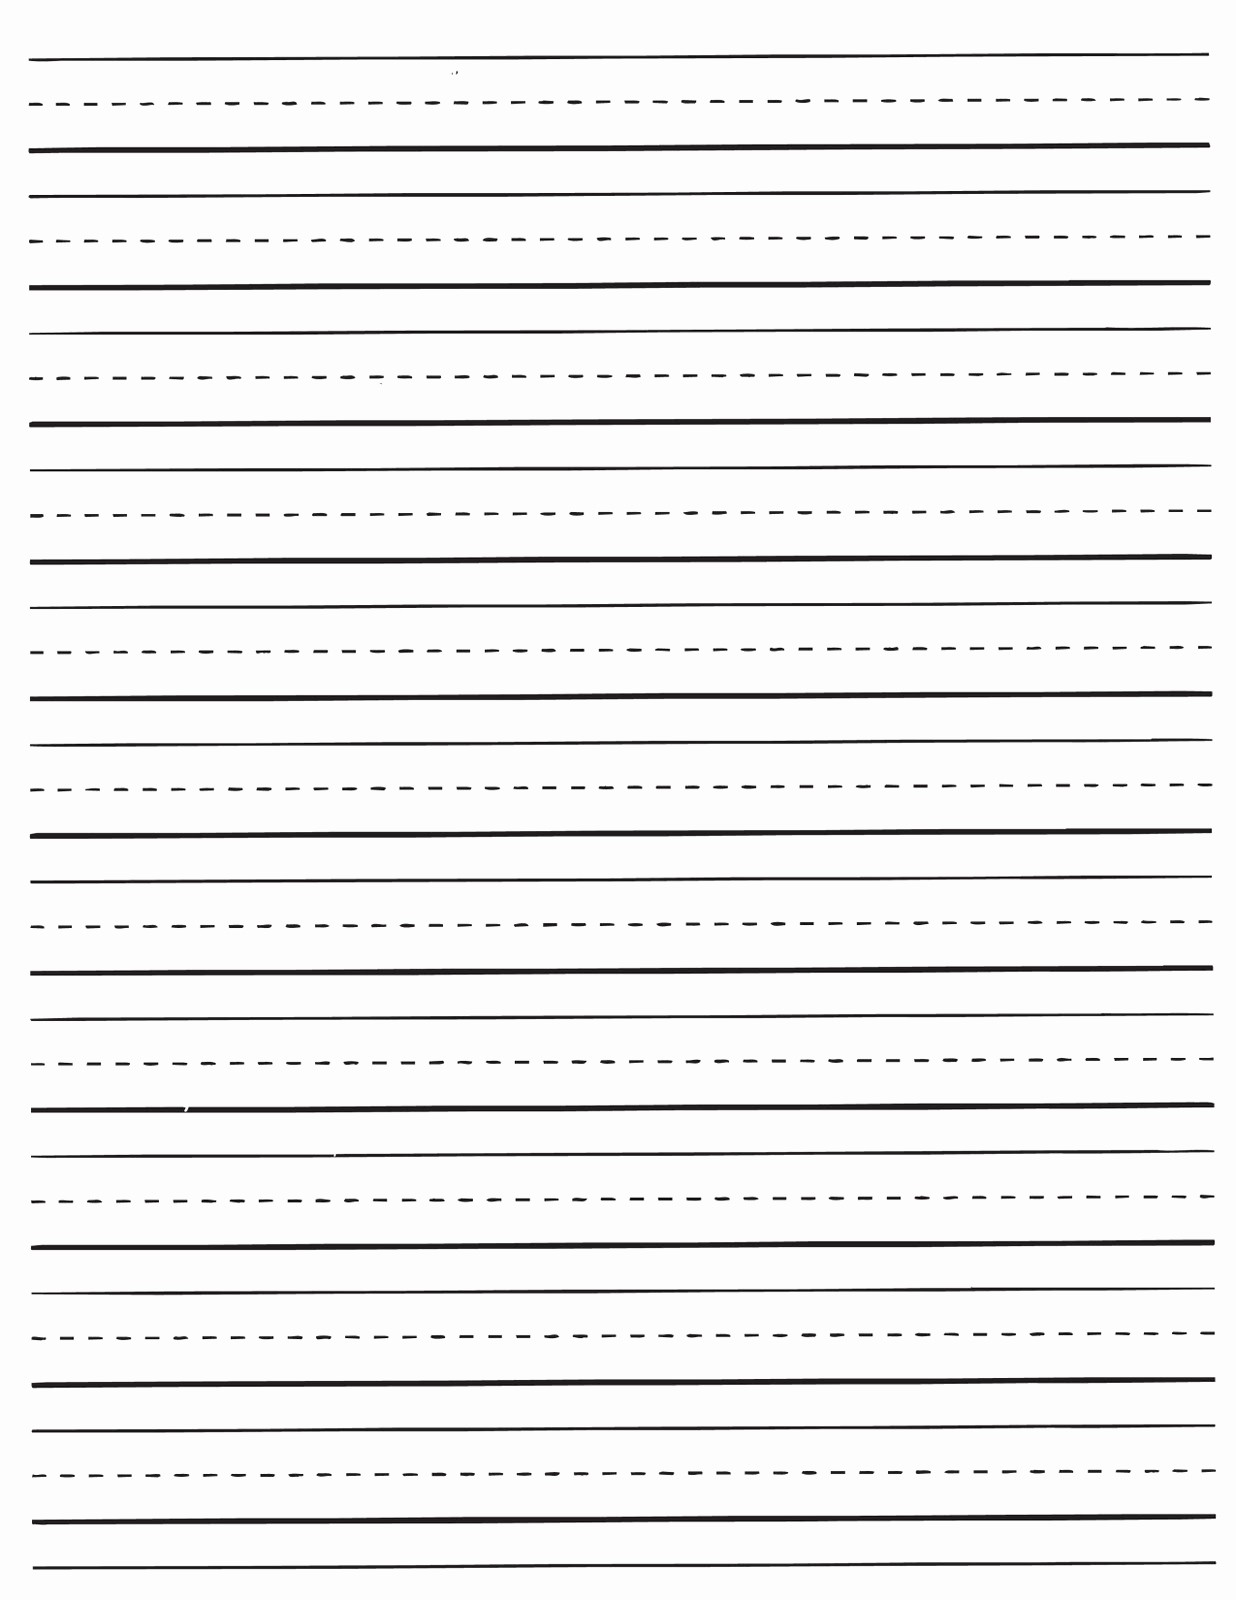 Lined Paper for Handwriting Practice Awesome Free Printable Lined Handwriting Paper Printable Pages